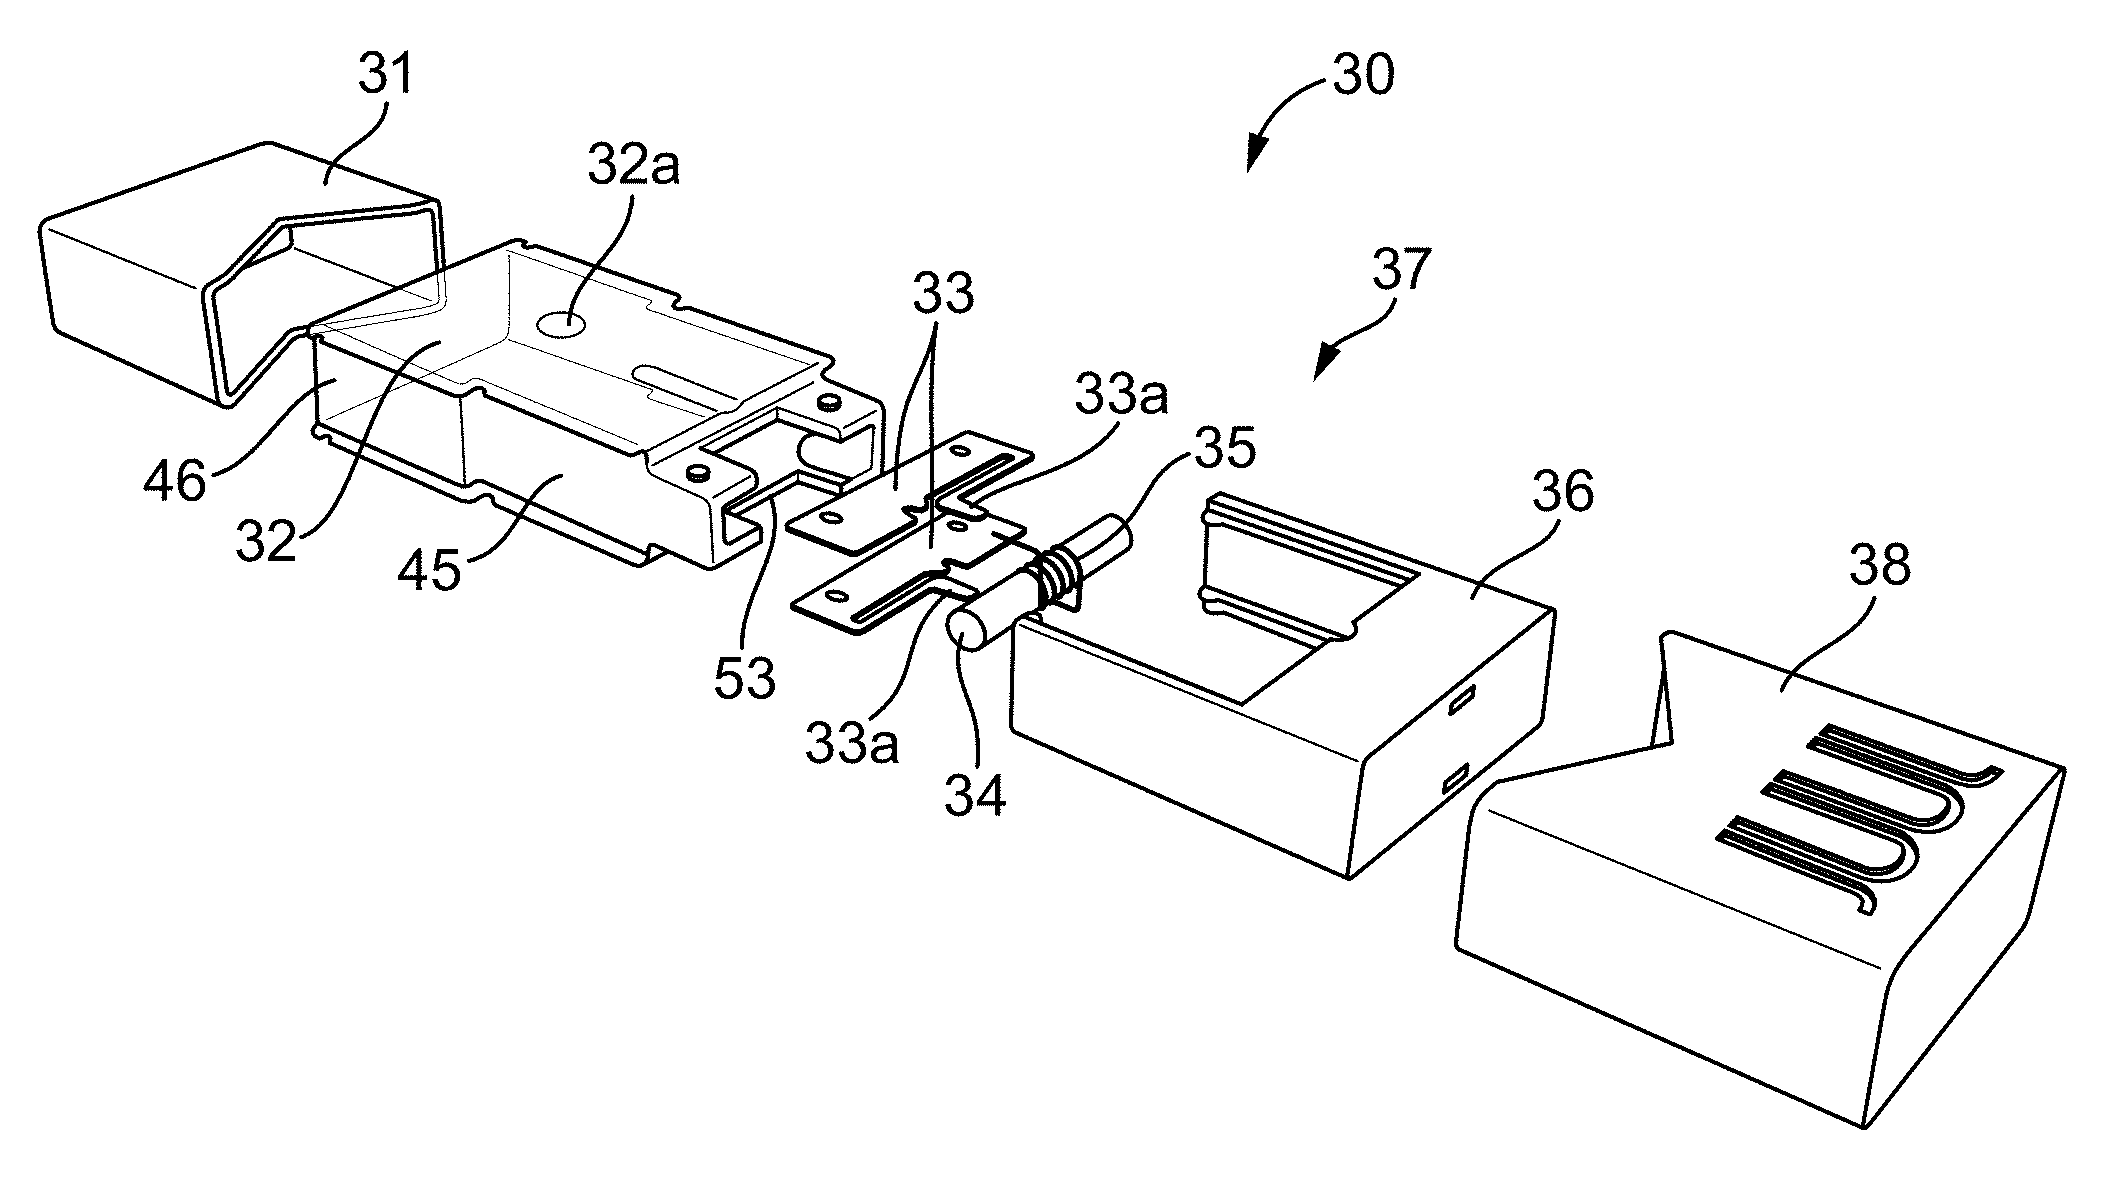 us10045567b2 vaporization device systems and methods patents Switch Wiring Diagram